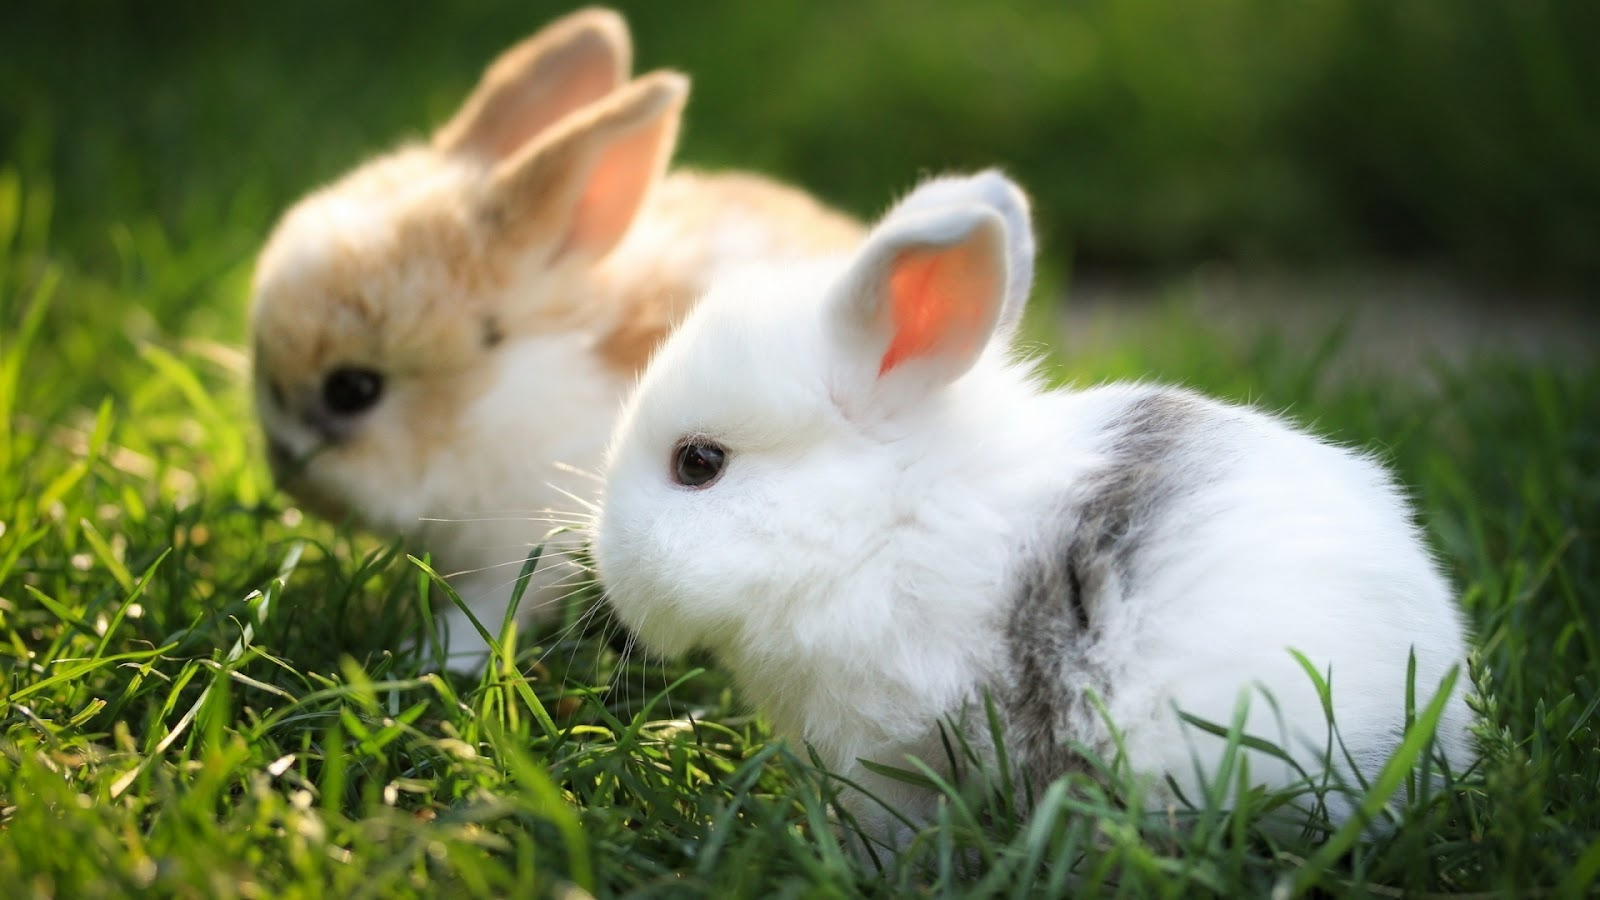 Your Wallpaper Cute Rabbit Wallpaper 1600x900